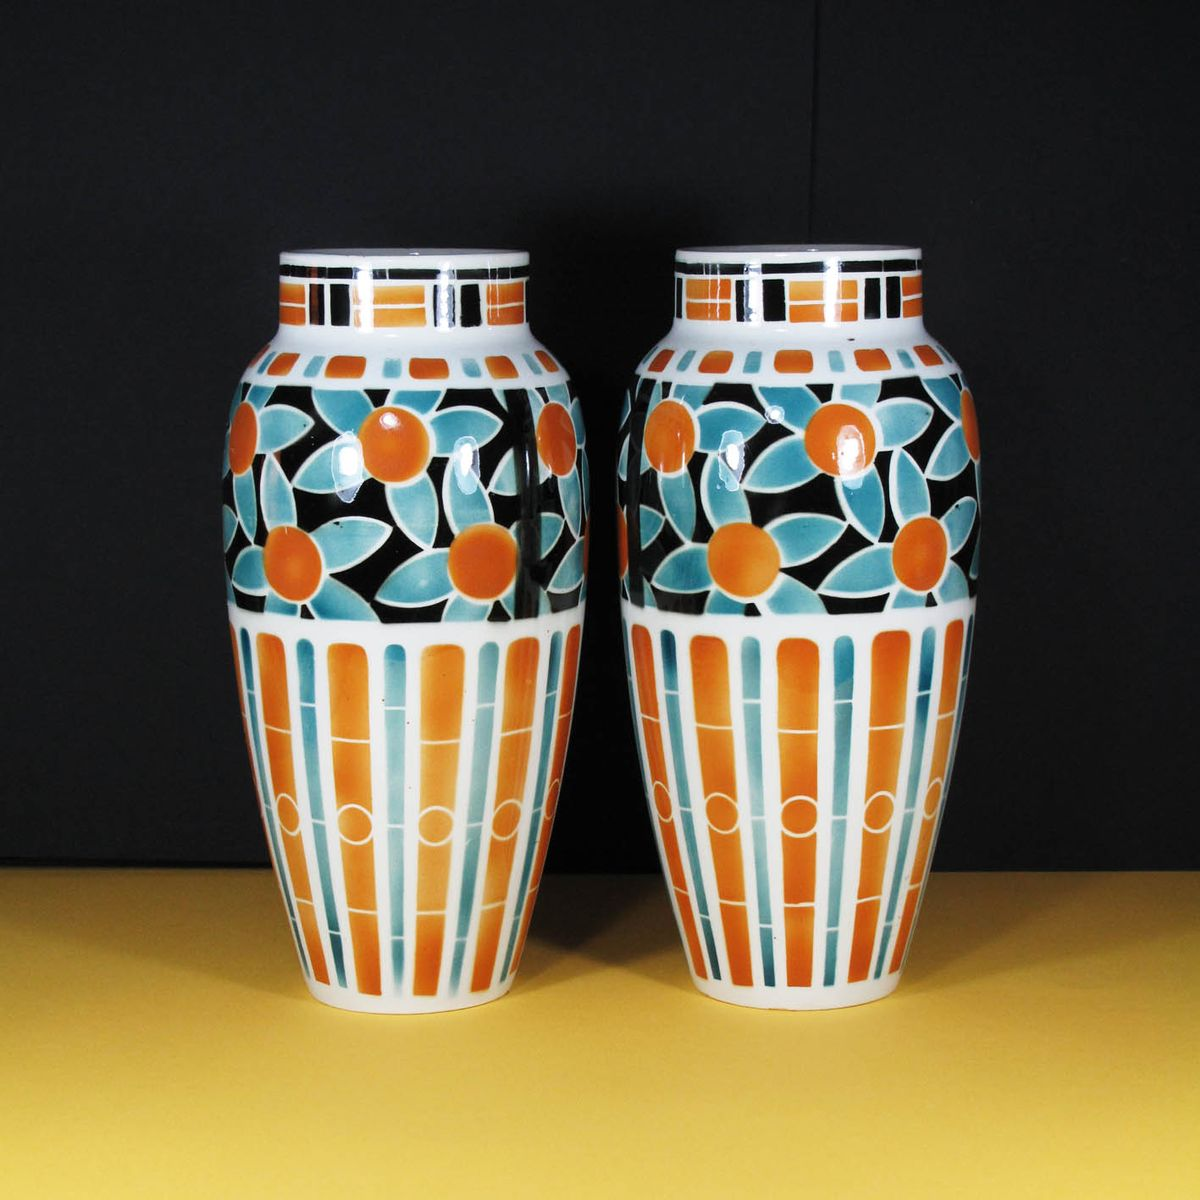 vintage french art deco vases by keller et gu rin for lun ville set of 2 for sale at pamono. Black Bedroom Furniture Sets. Home Design Ideas